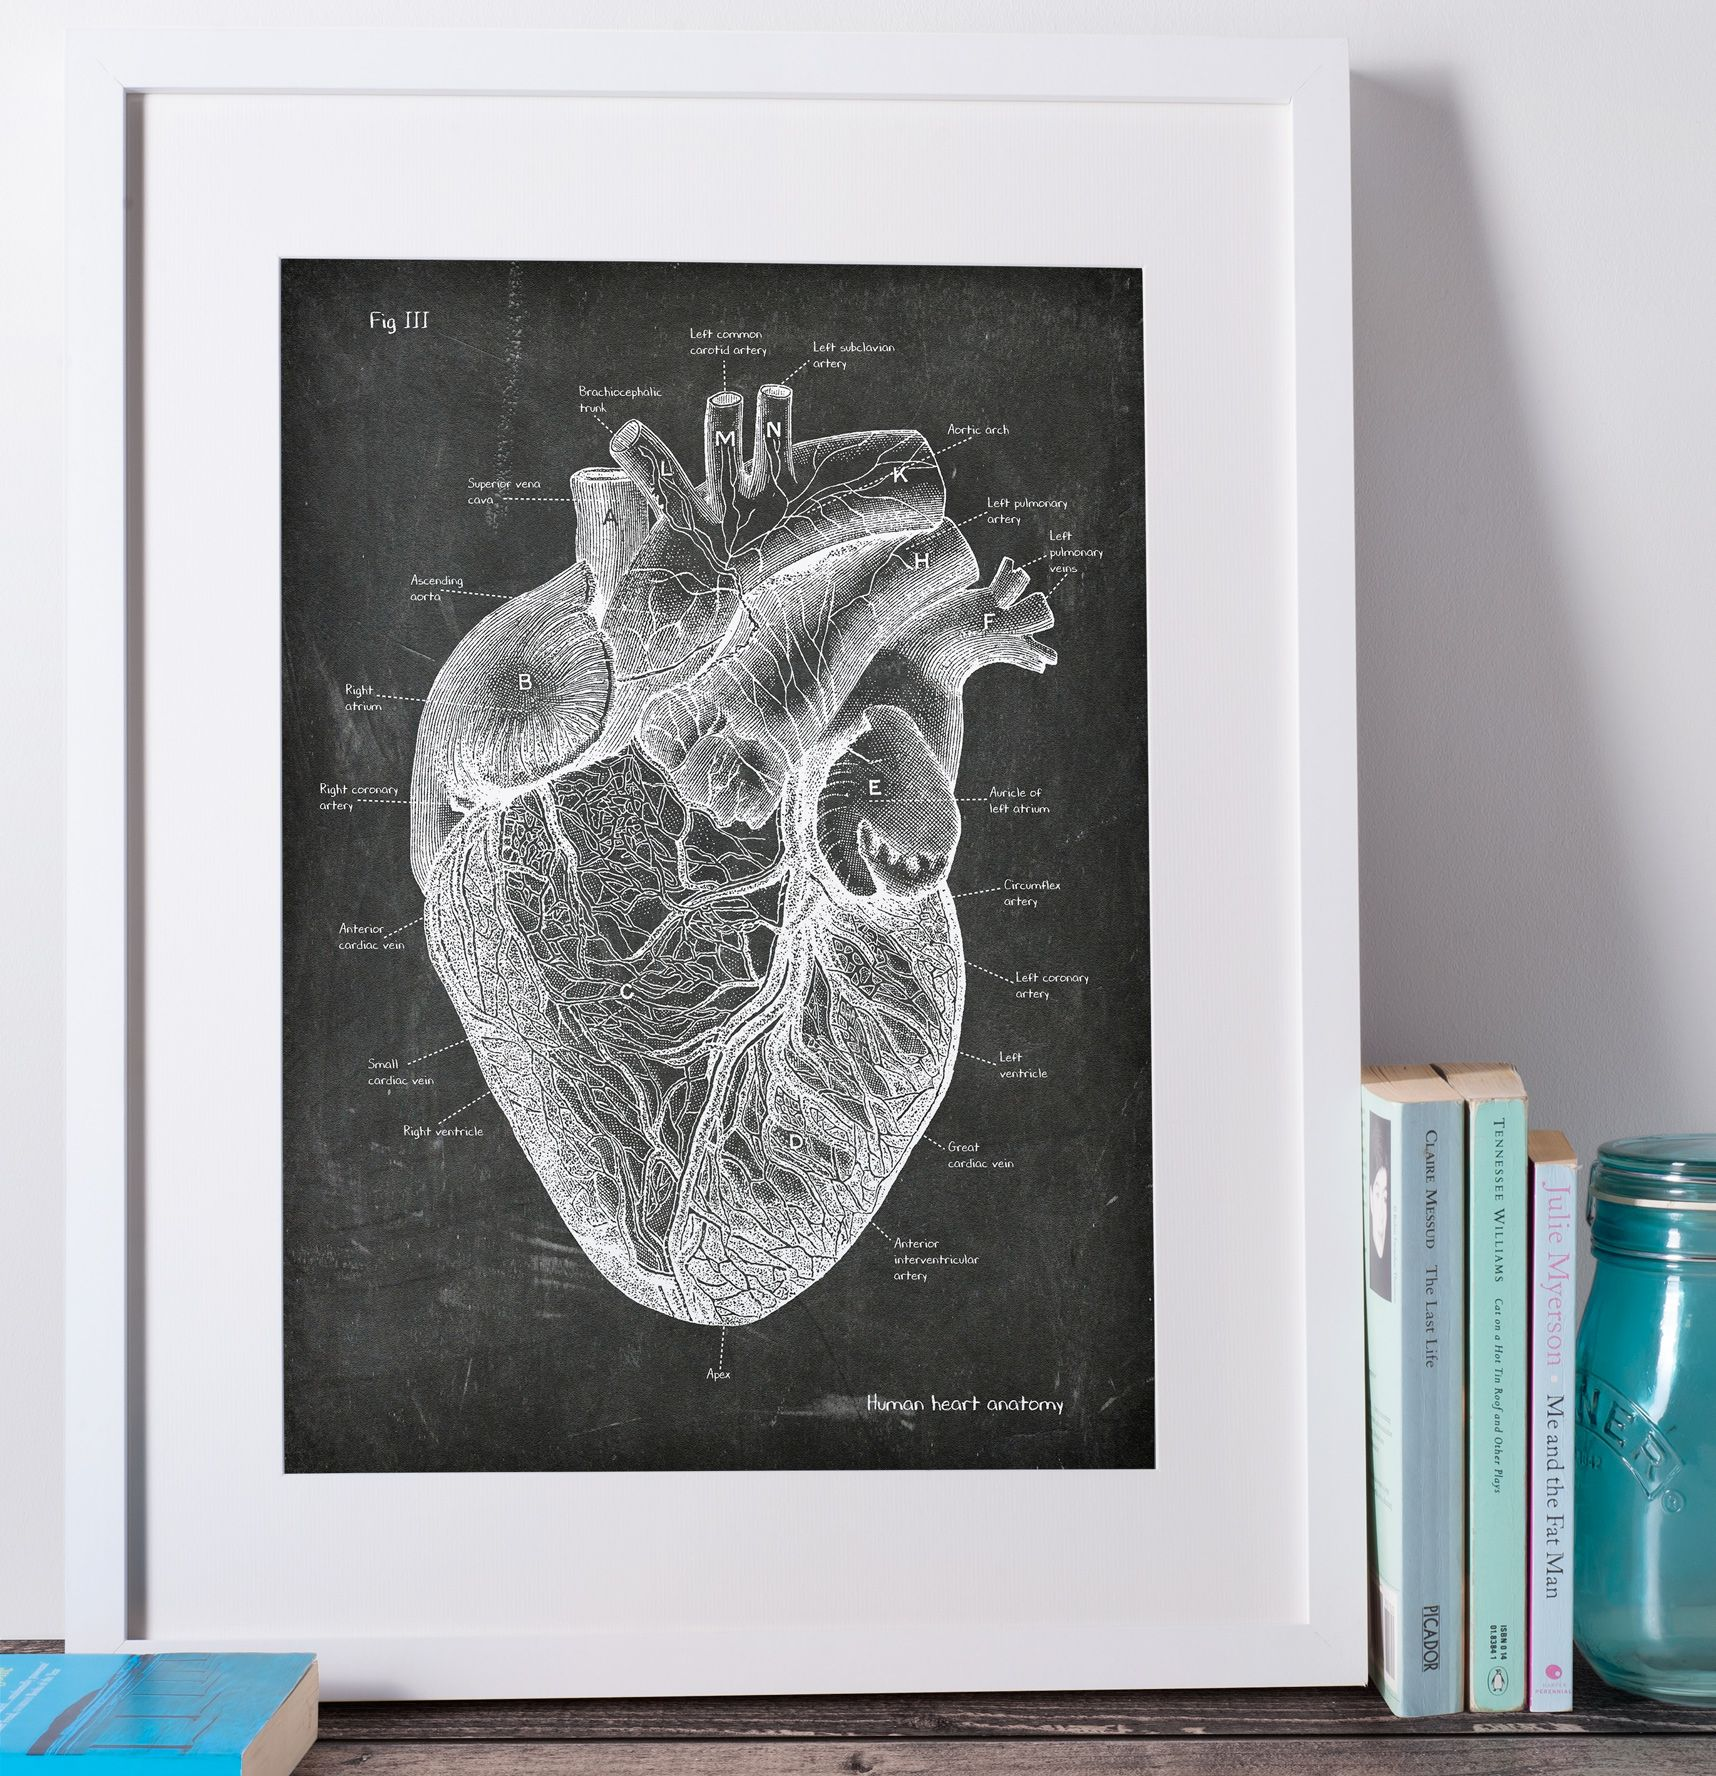 Dorable Heart Anatomy Art Pattern - Physiology Of Human Body Images ...